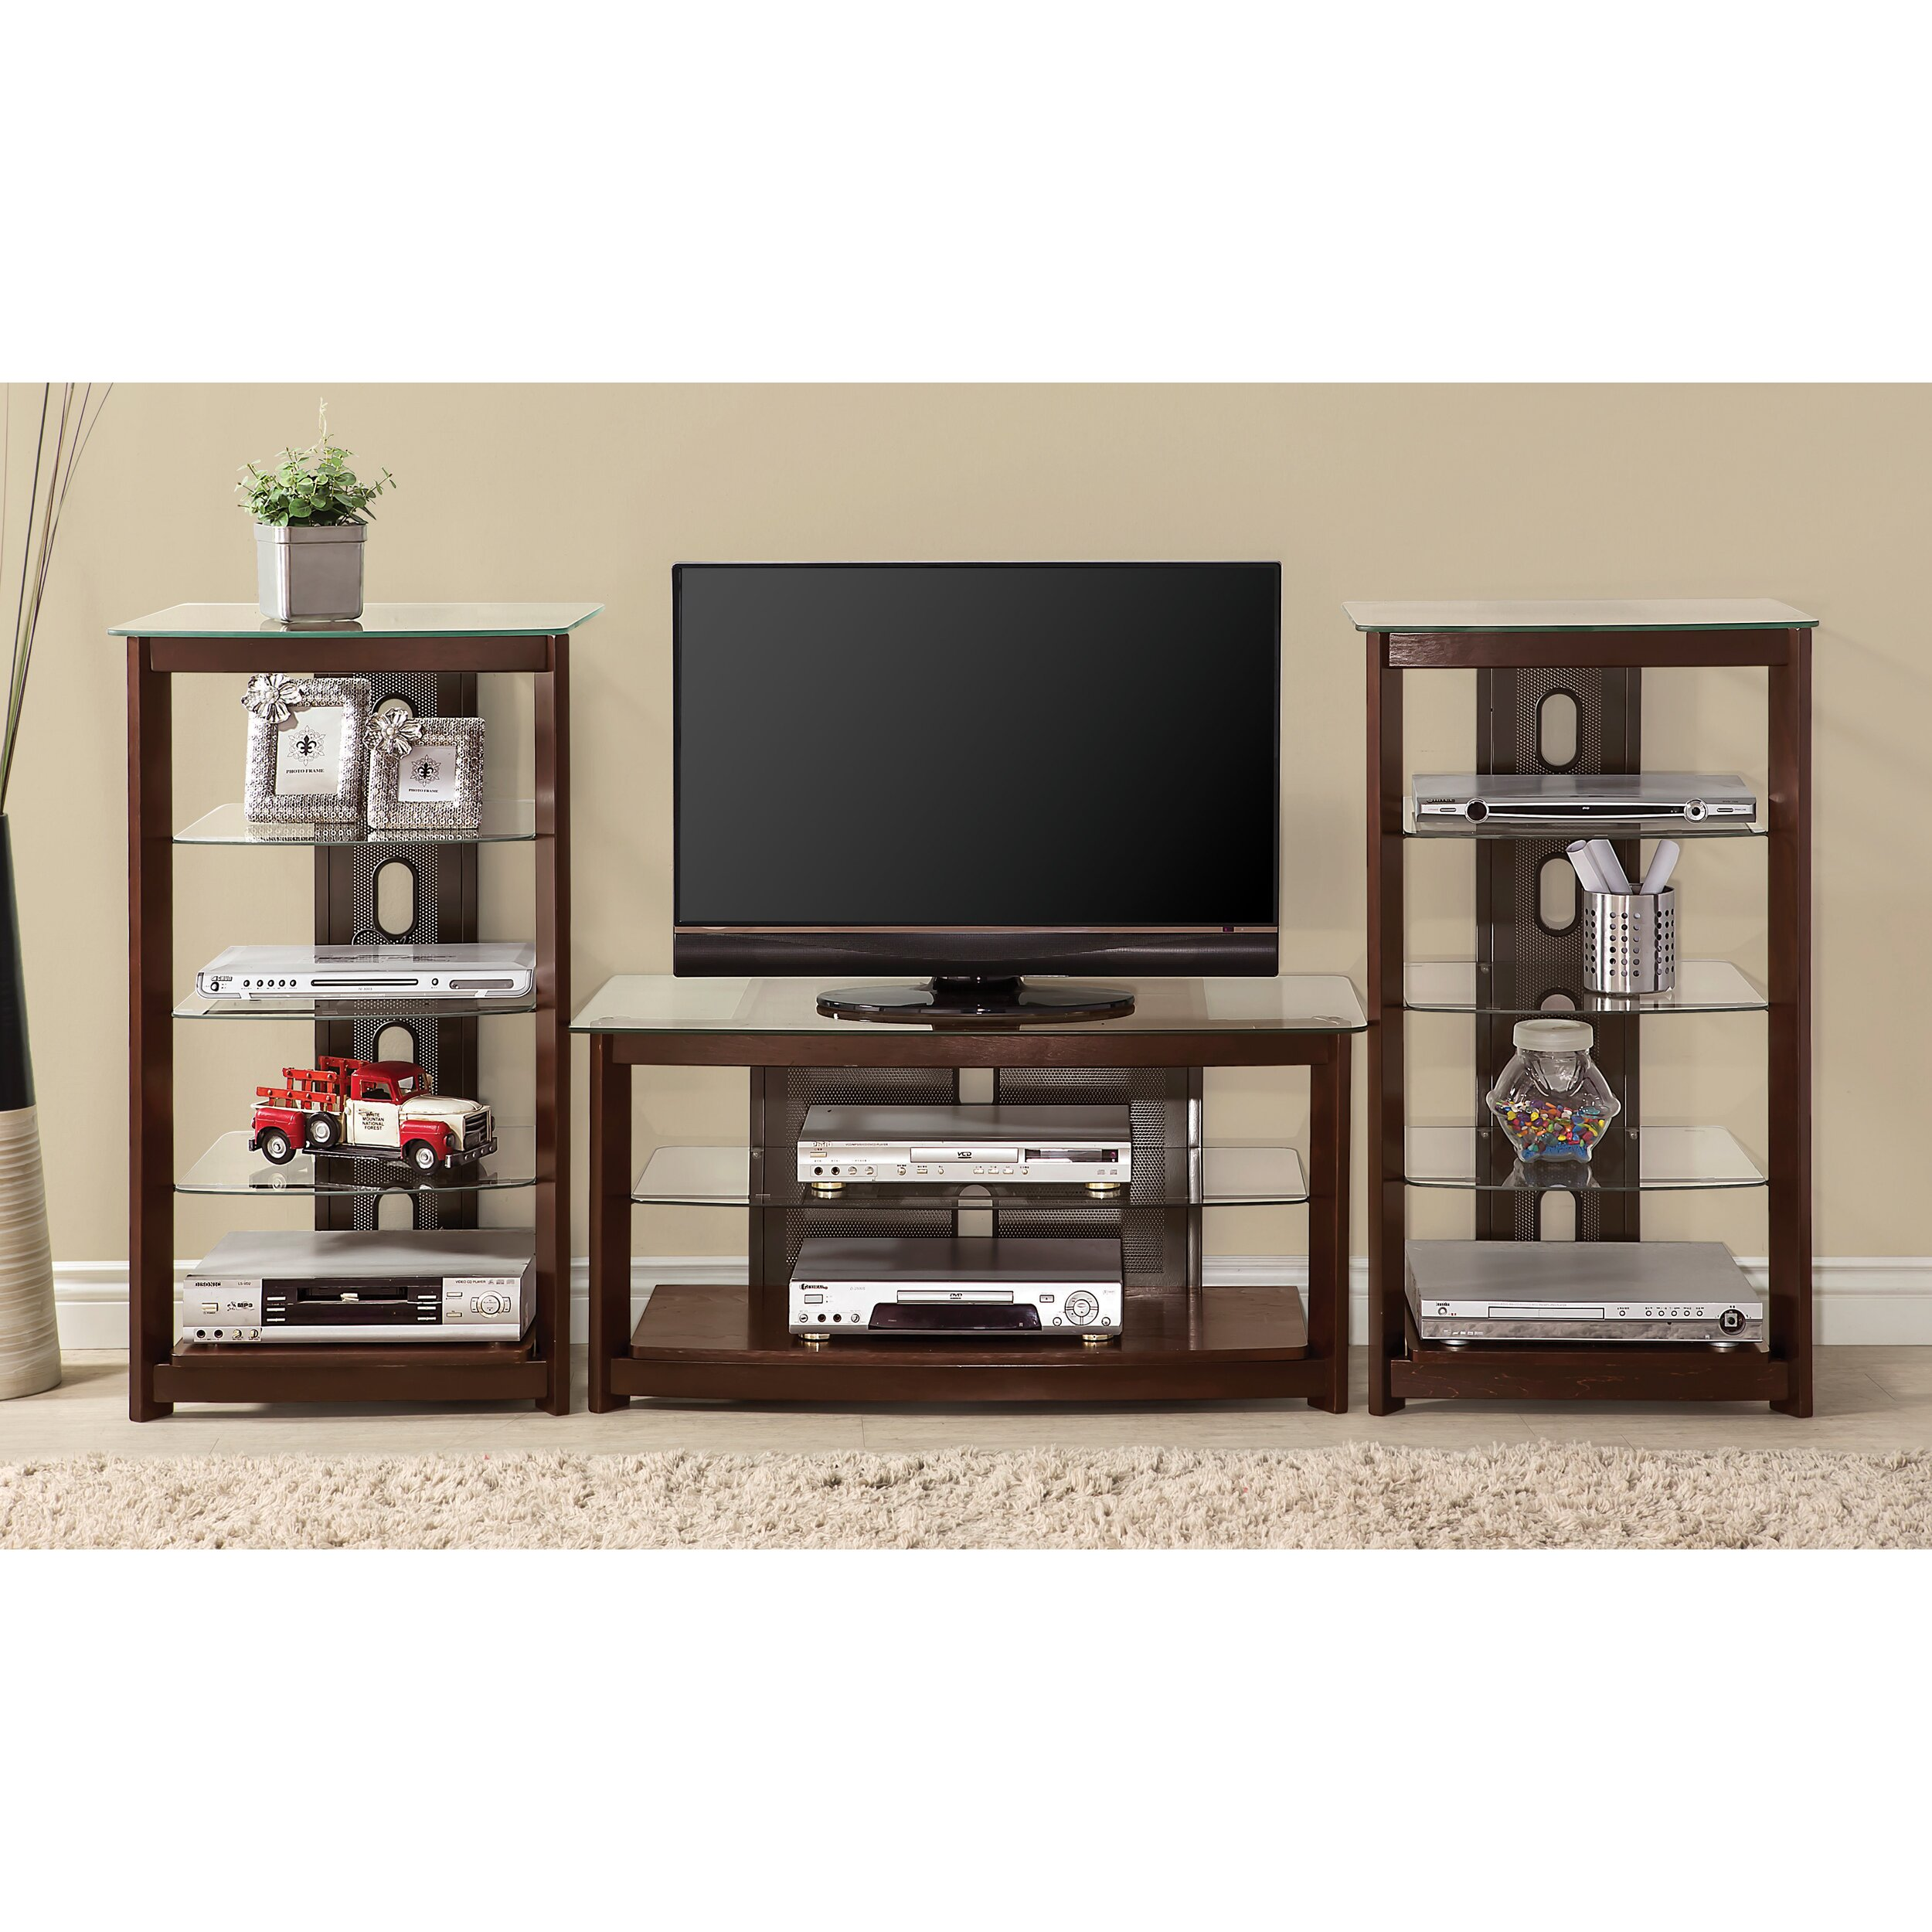 Wildon home entertainment center reviews wayfair Home entertainment center